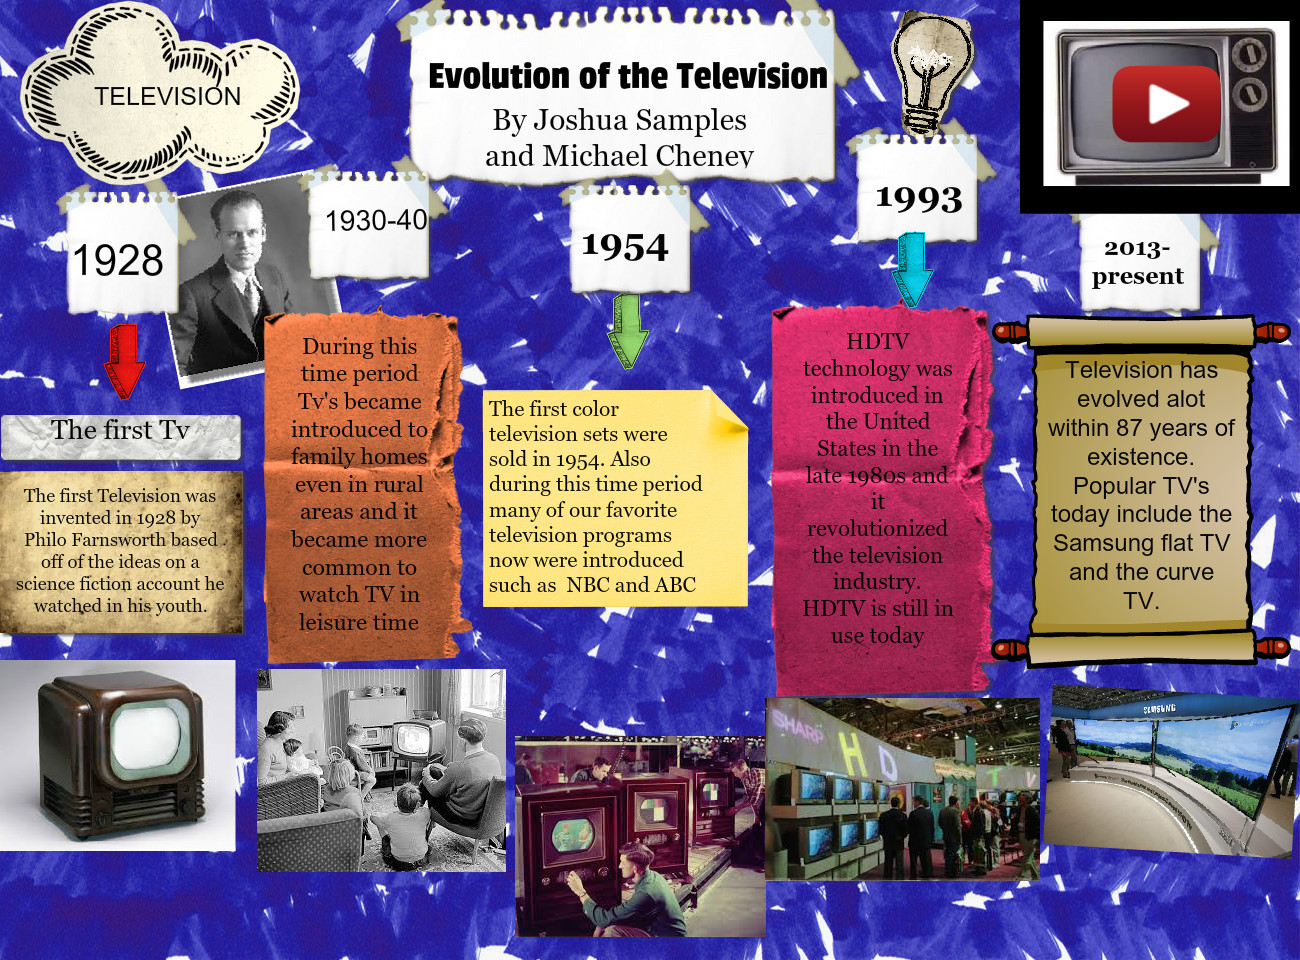 Evolution of the Television